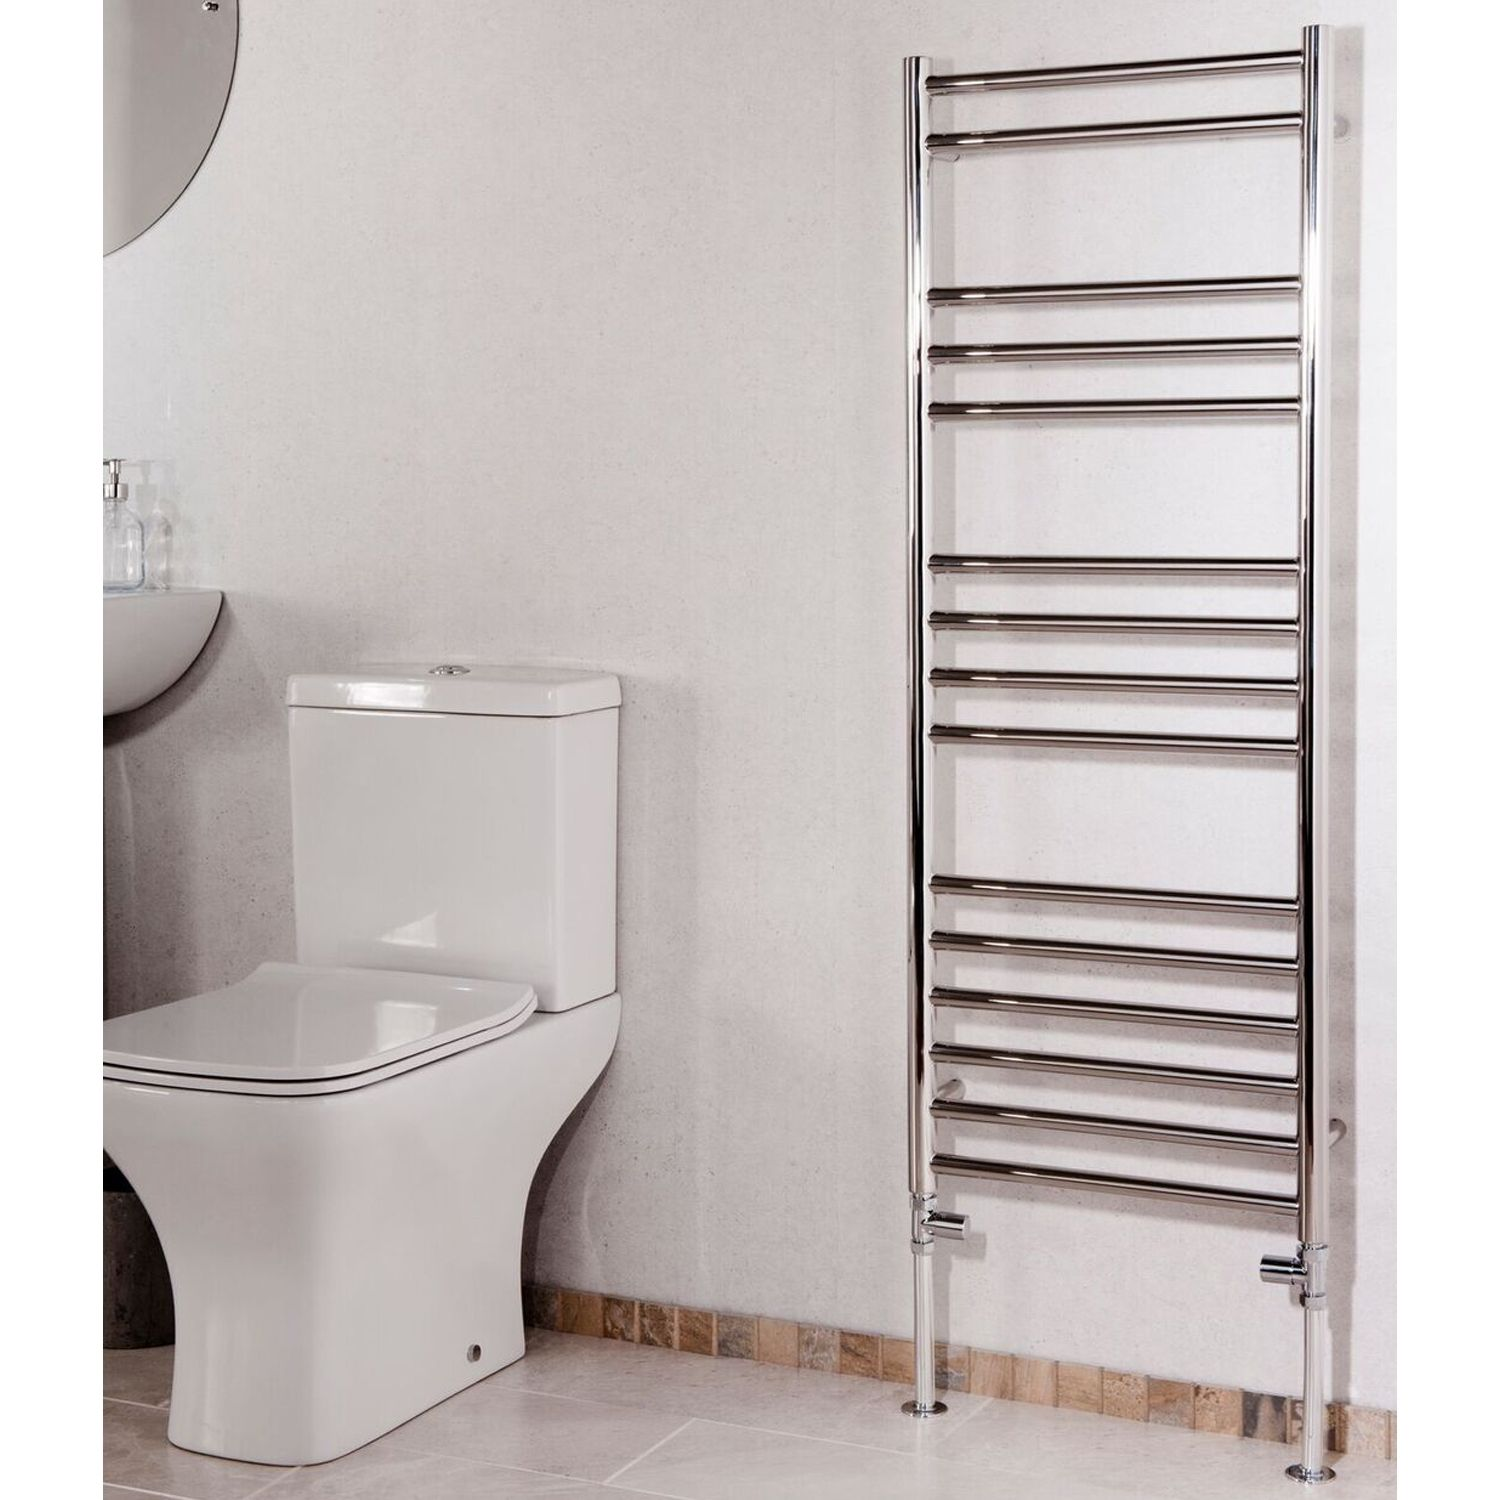 Cali Luxe Straight Heated Towel Rail 1200mm H X 450mm W Stainless Steel Towel Rail Heating And Plumbing Chrome